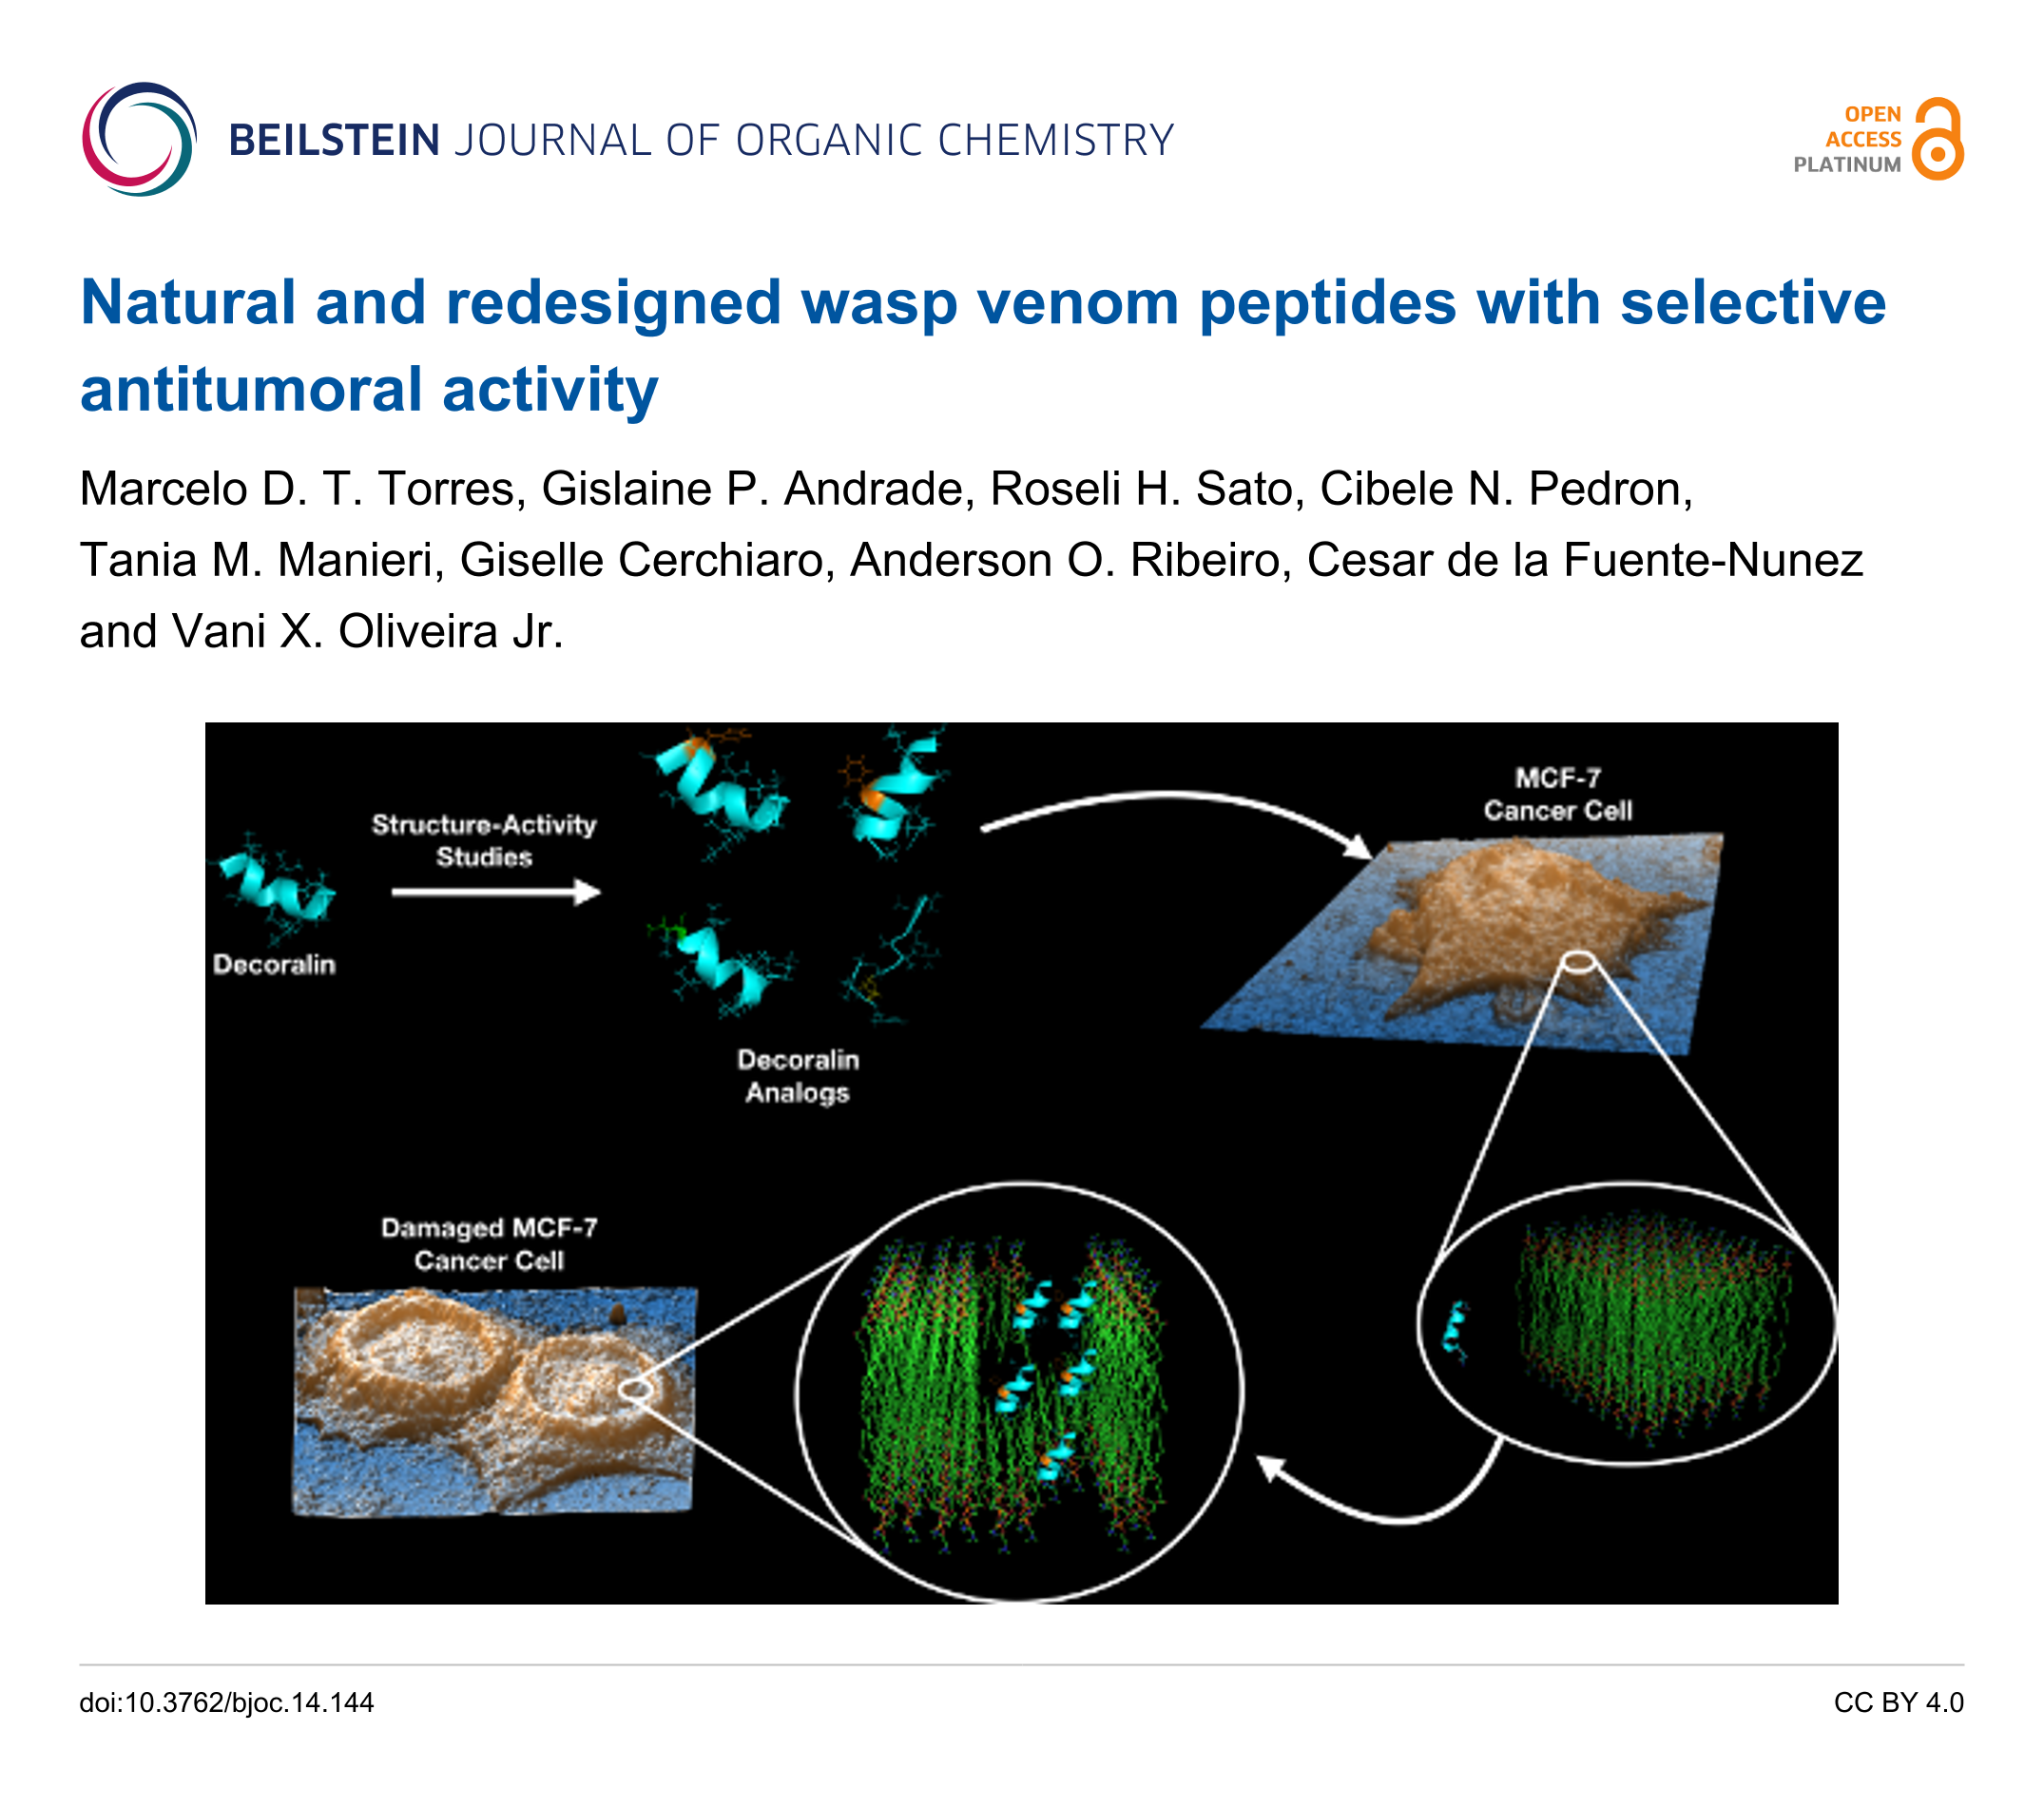 Natural And Redesigned Wasp Venom Peptides With Selective Schematic Process Of Carbon Dating Tree Rings Using The C14 System Back To Article